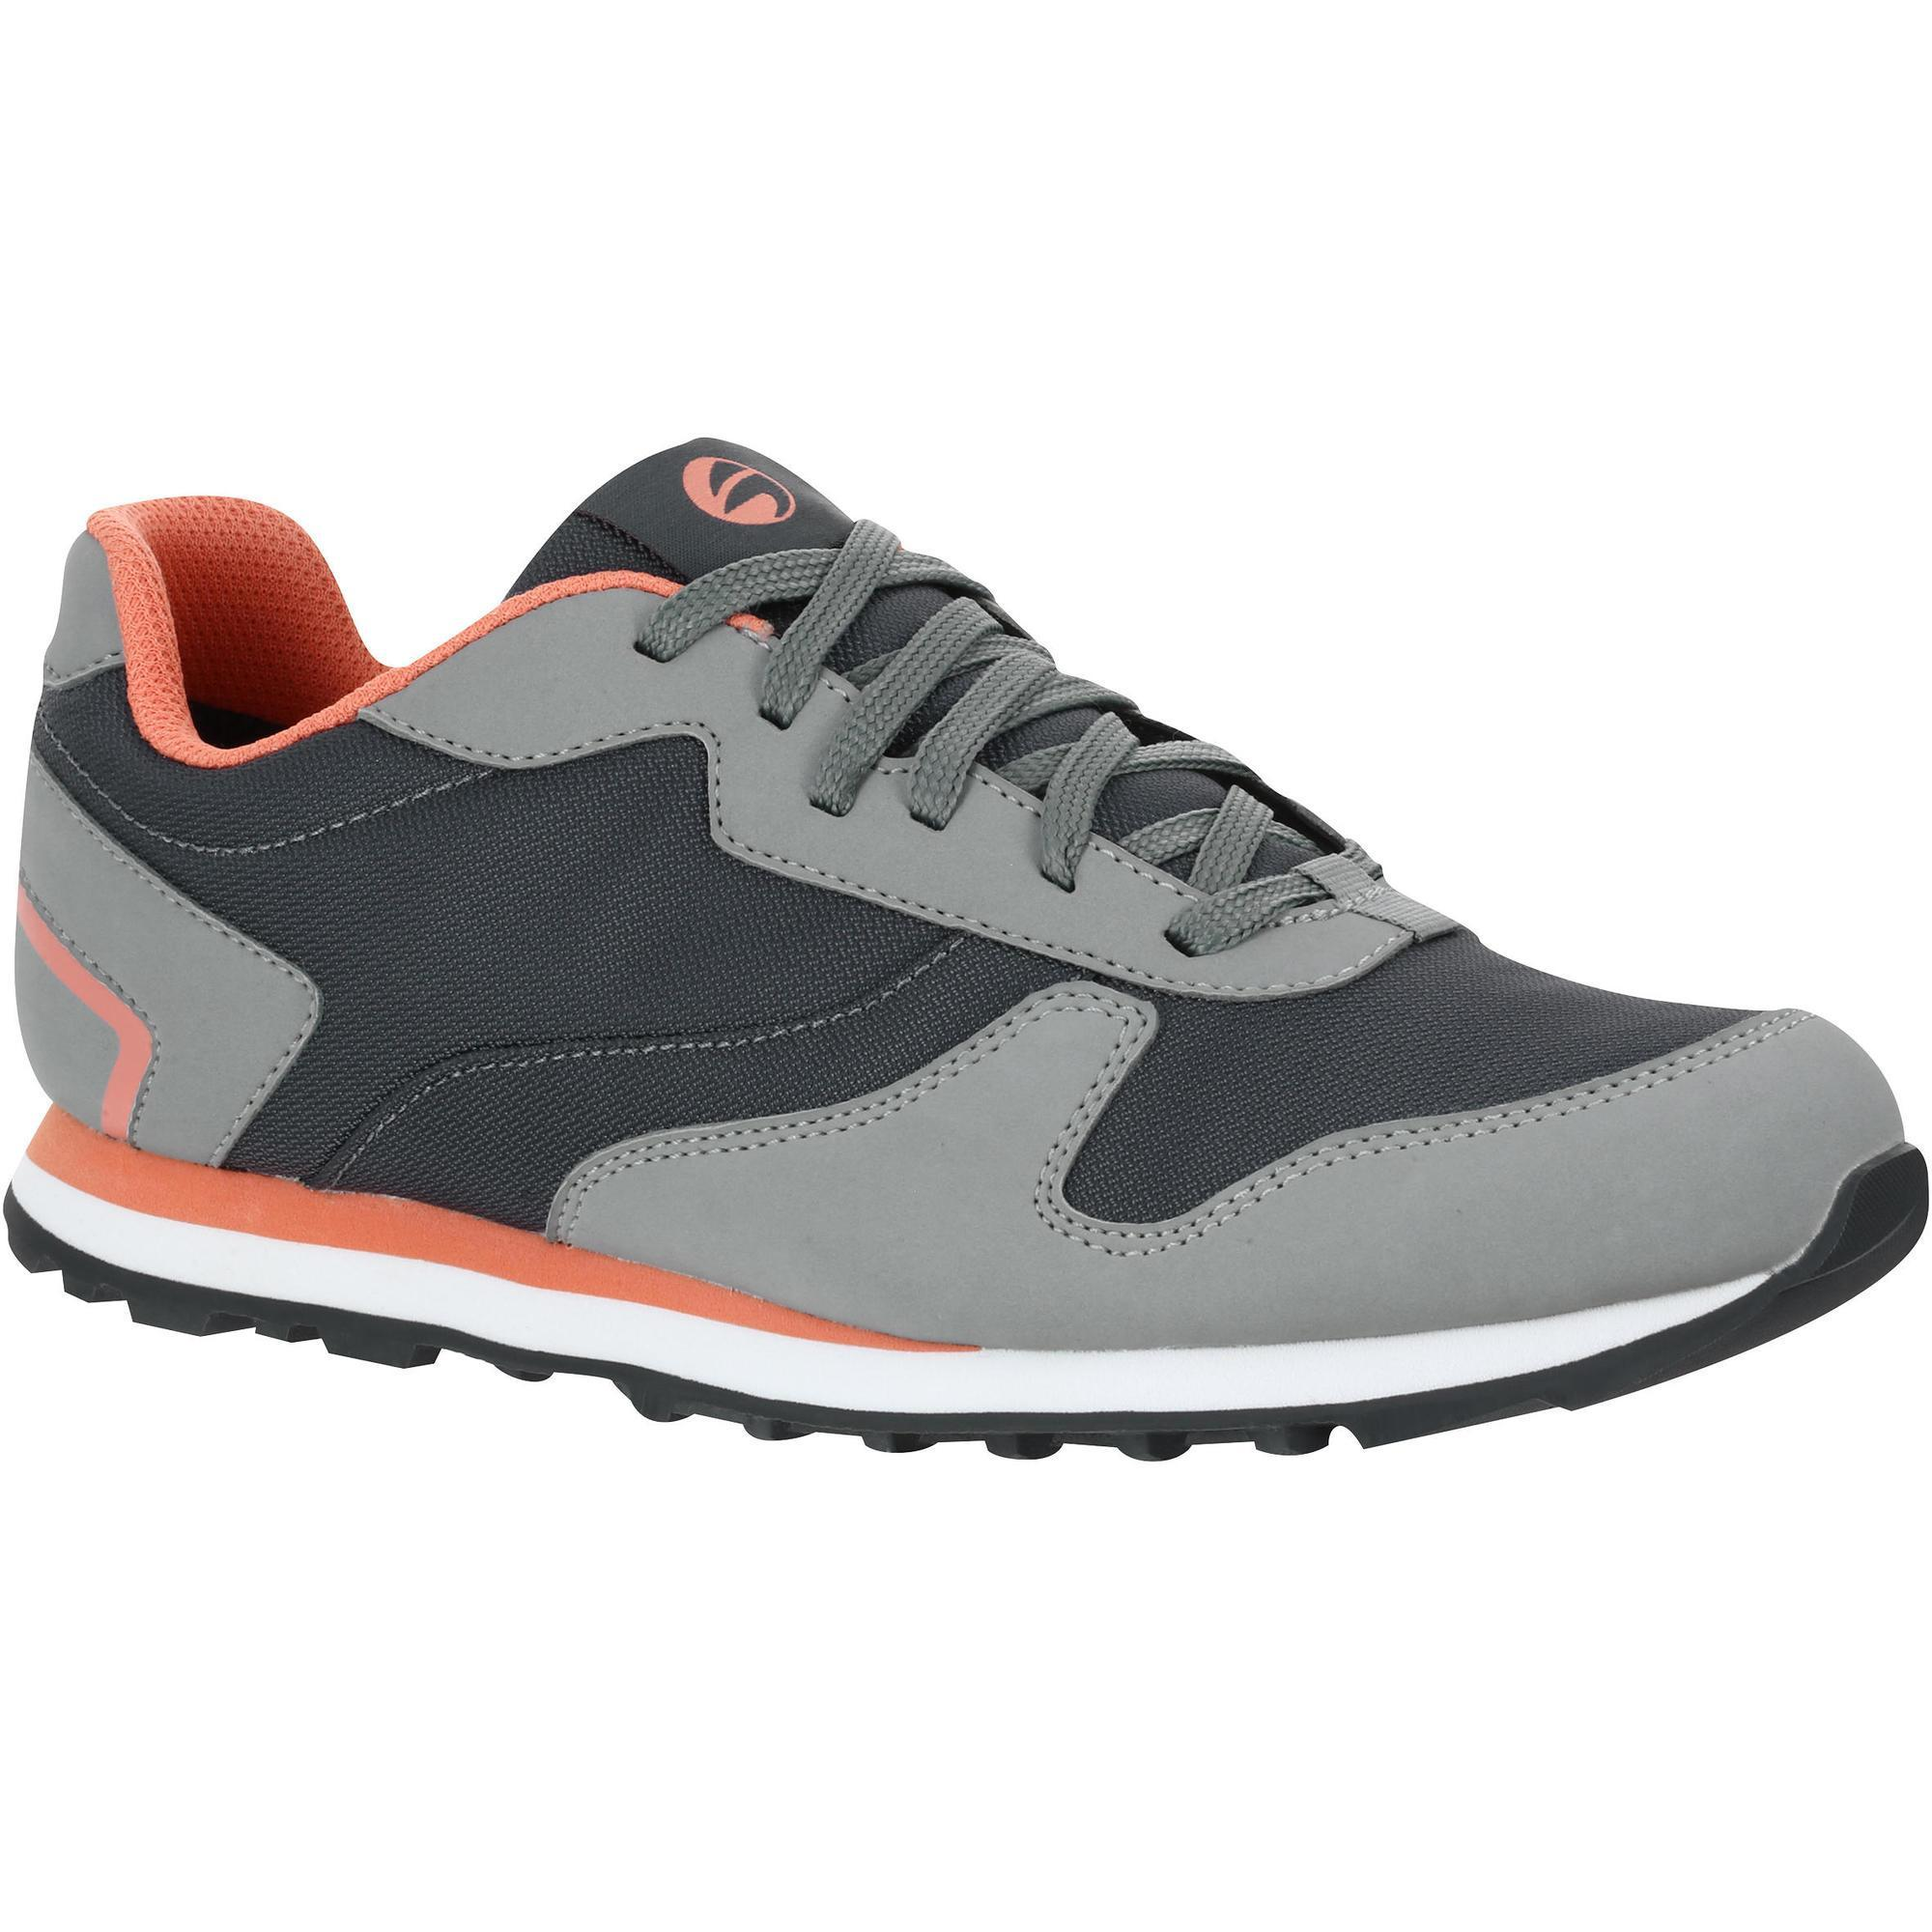 Chaussures Gris Inesis mfrsr1Z